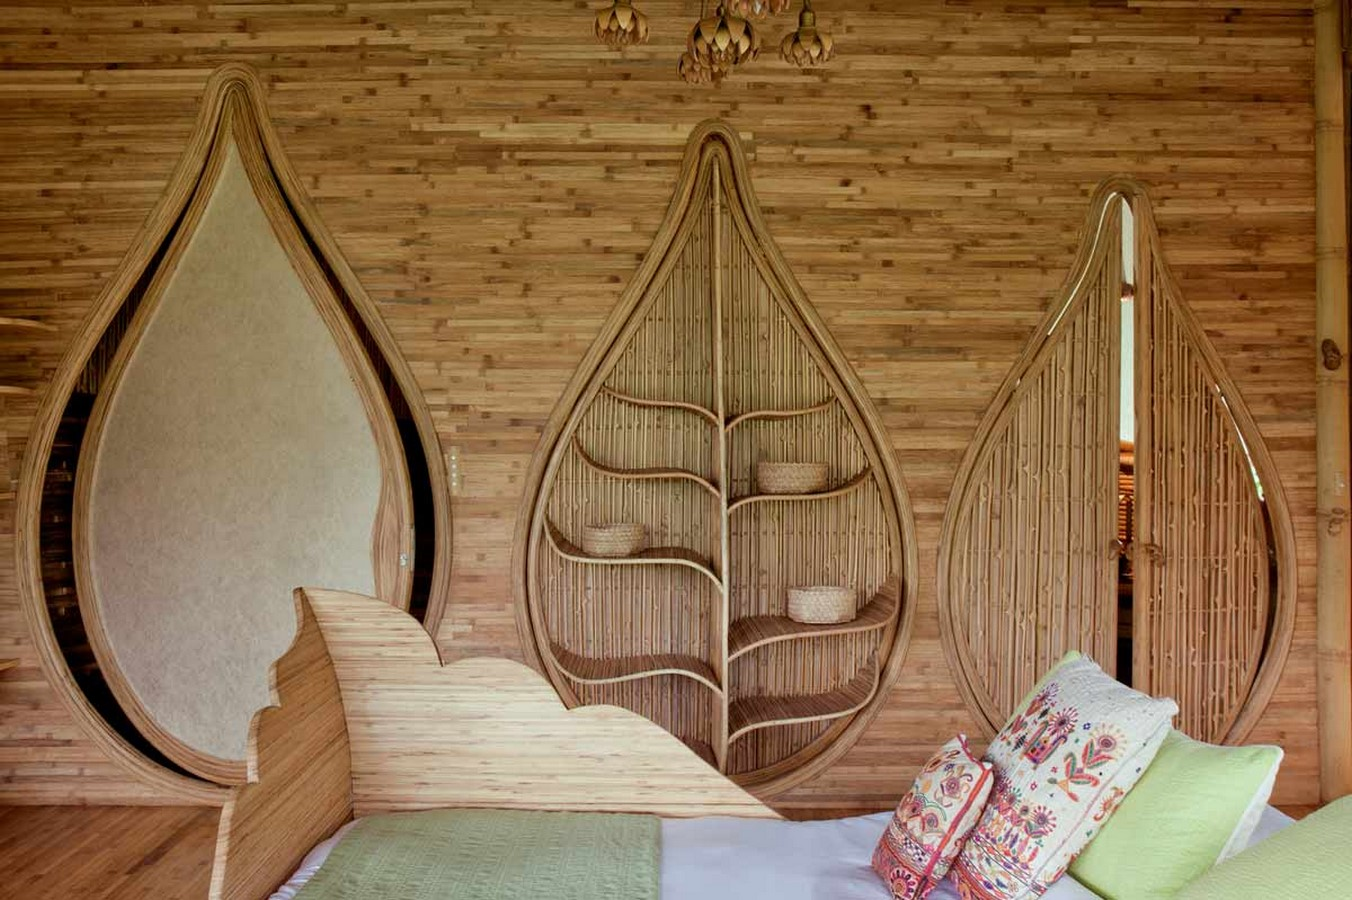 TEDTalks: for Architects: Magical houses, made of bamboo by Elora Hardy -Sheet6